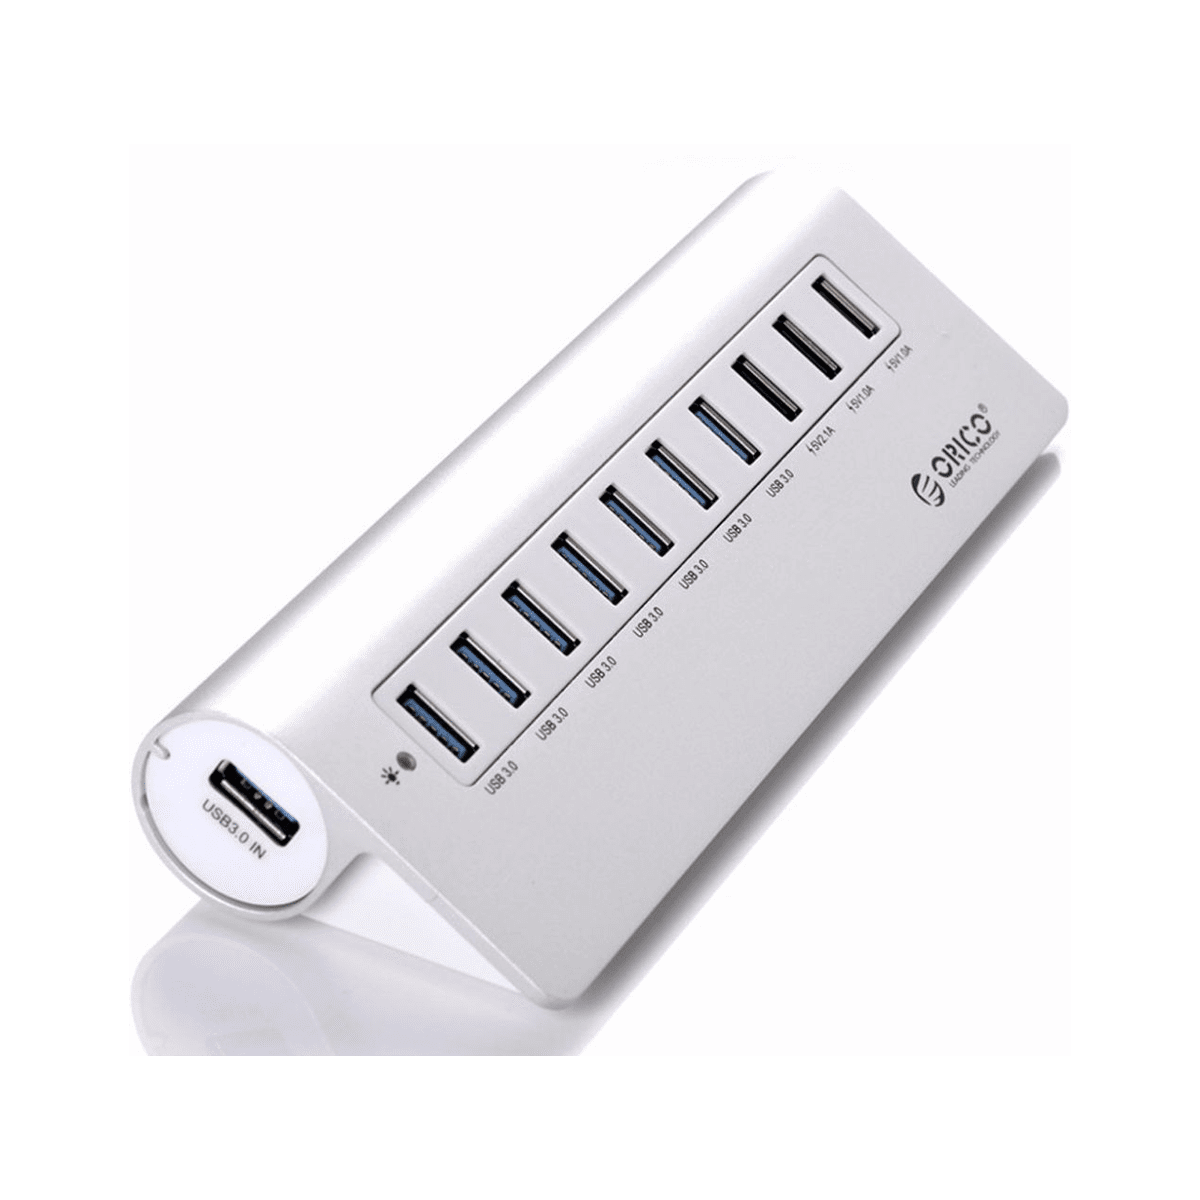 Orico M3h73p Aluminum 7-port Usb3.0 Hub With 3 Charging Port - Silver